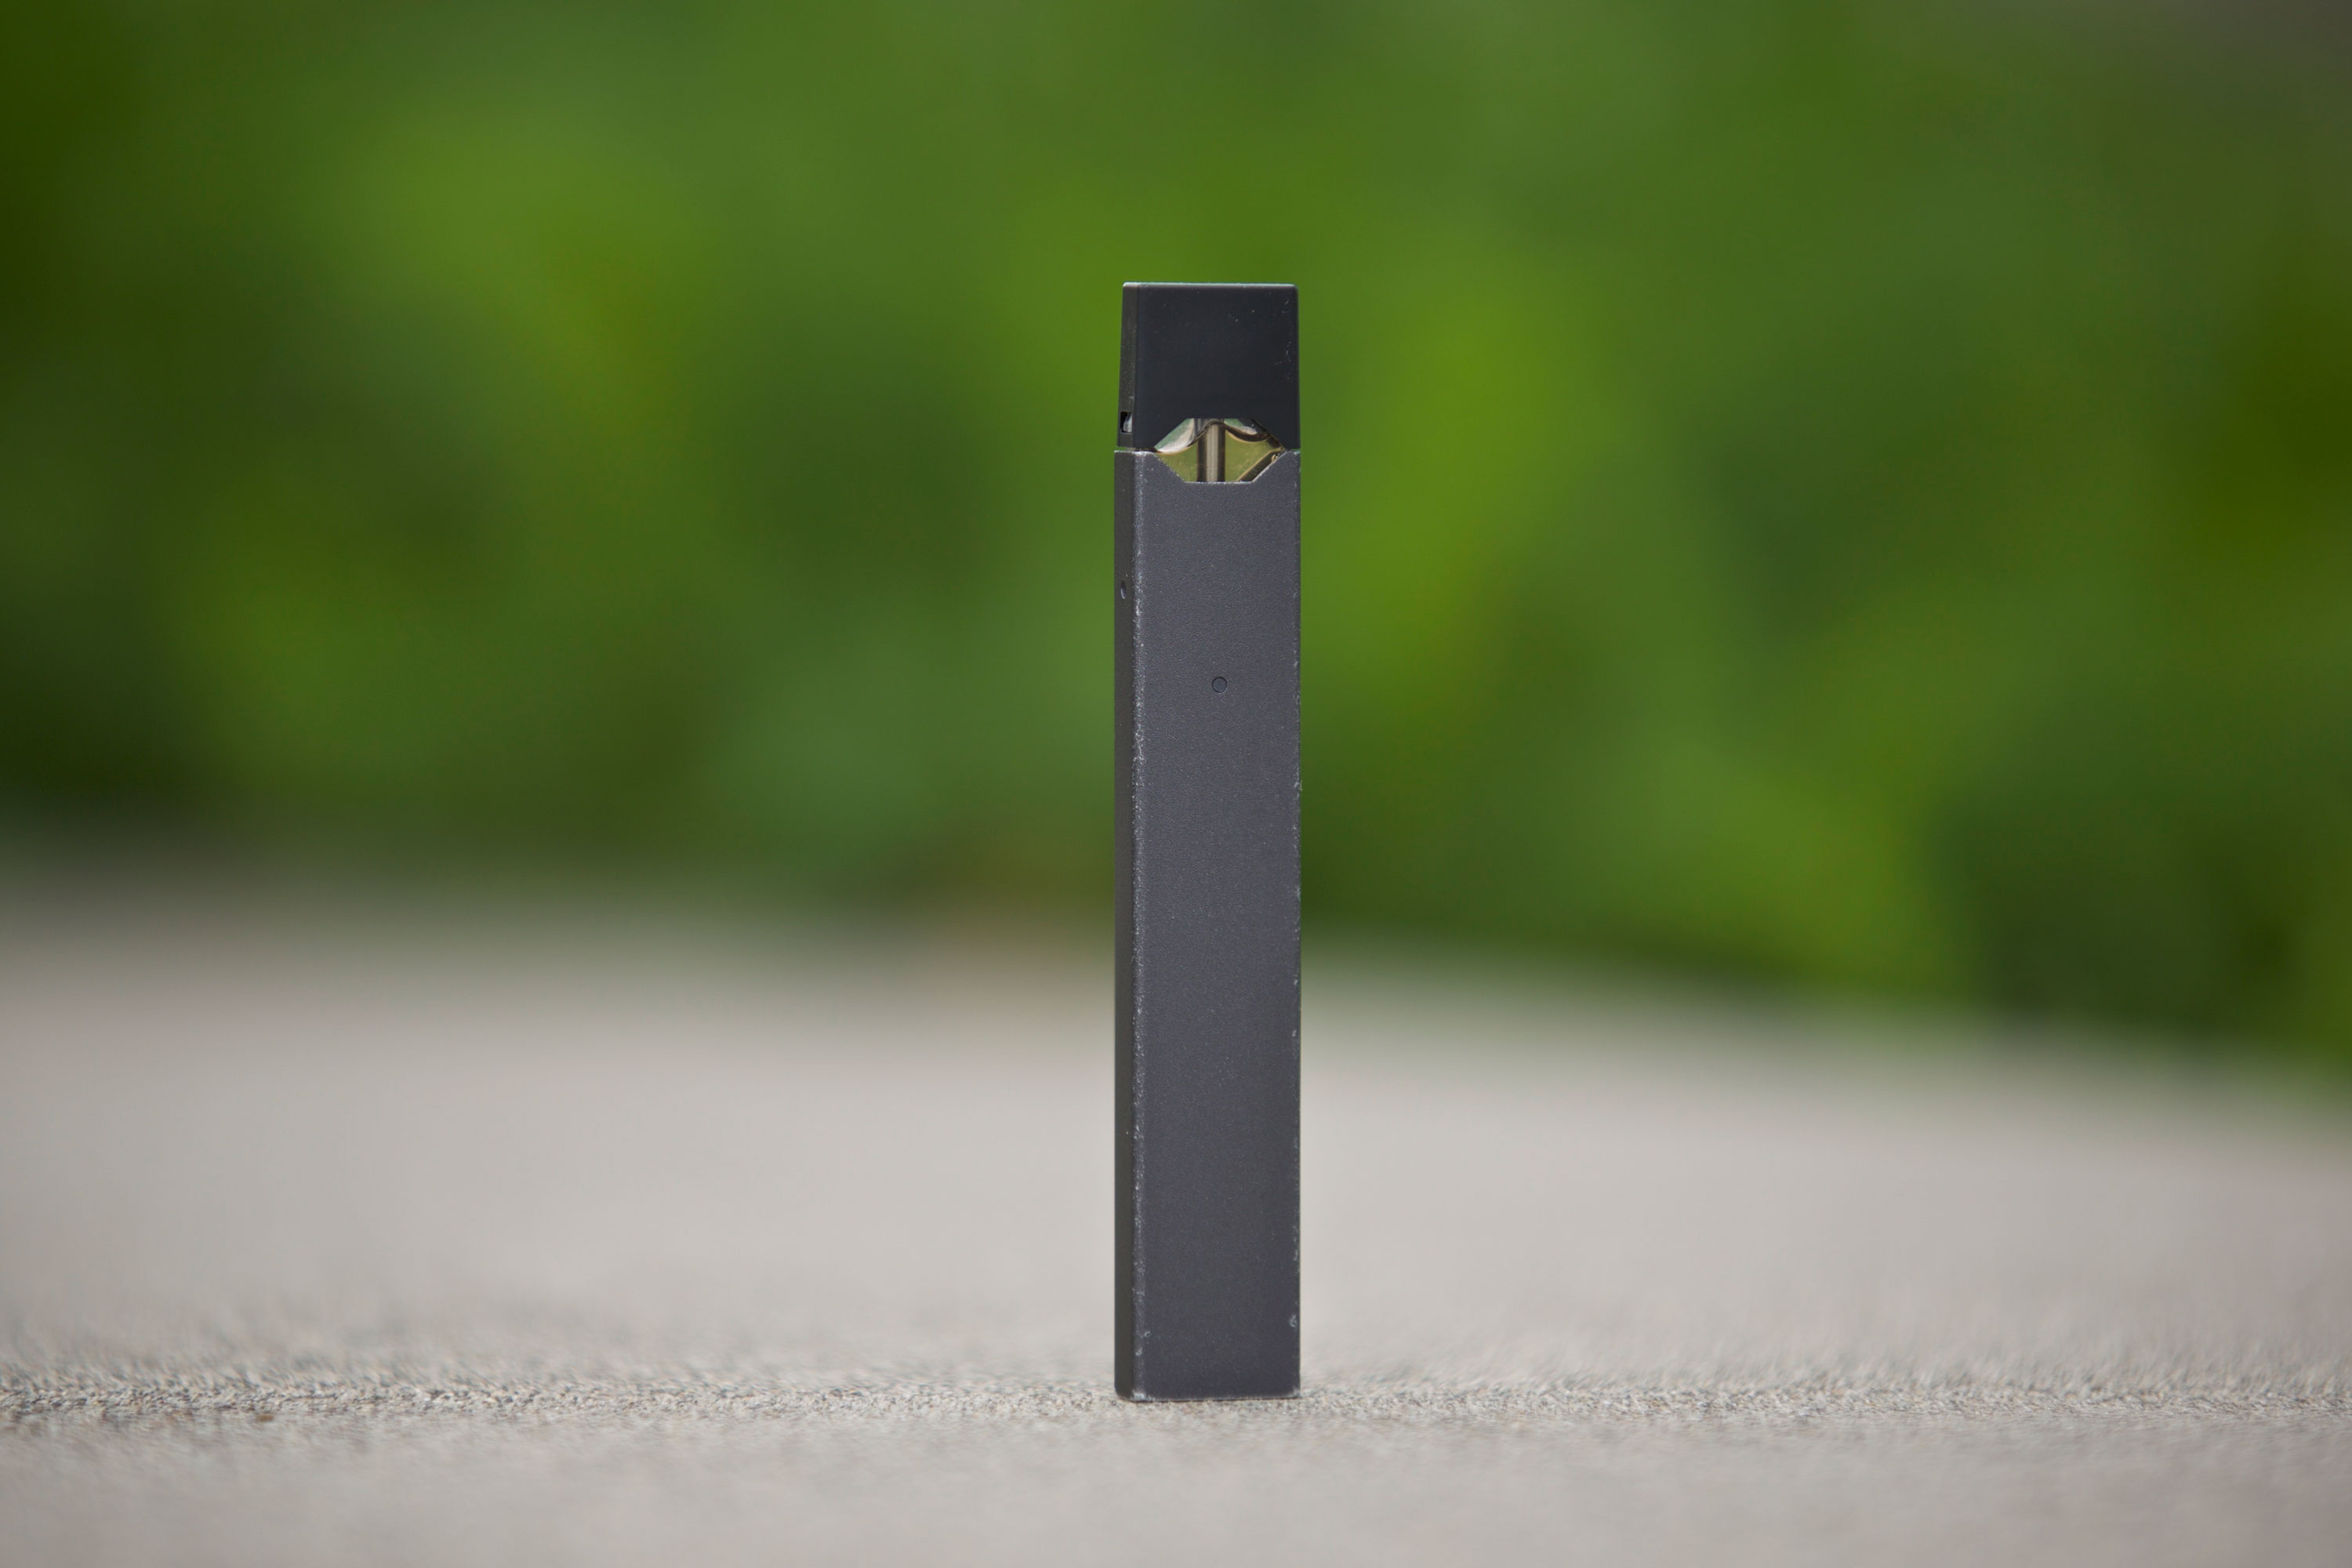 This April 16, 2019 photo shows a Juul vape pen.